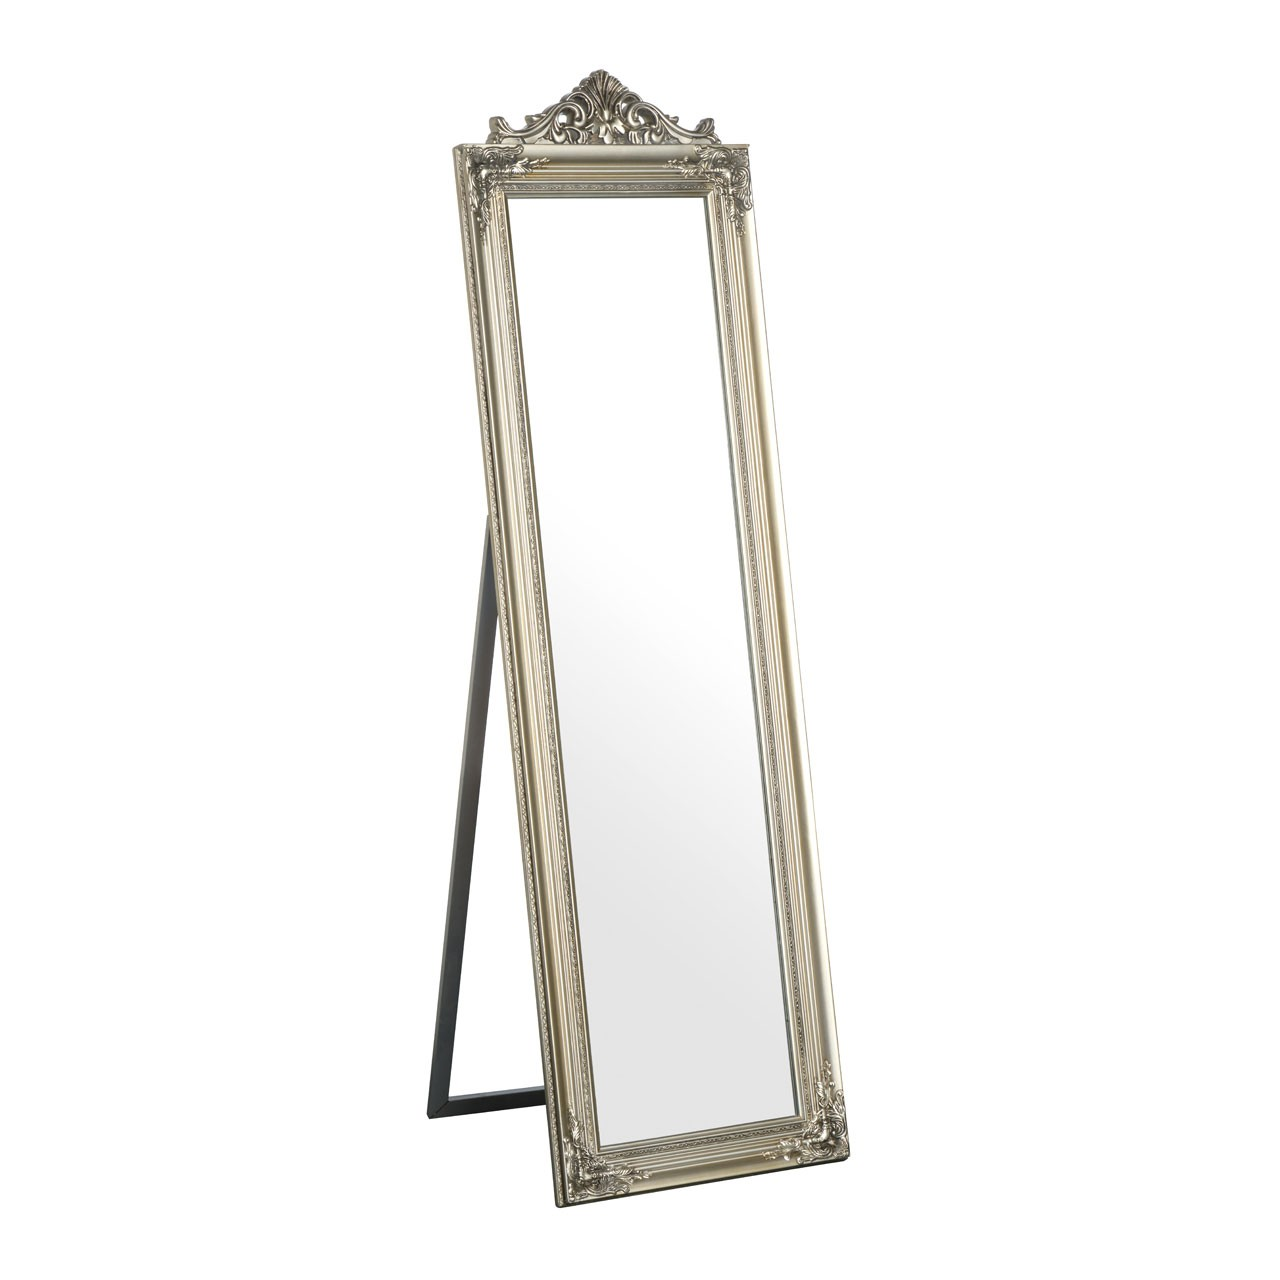 Prime Furnishing Boudoir Floorstanding Mirror - Silver